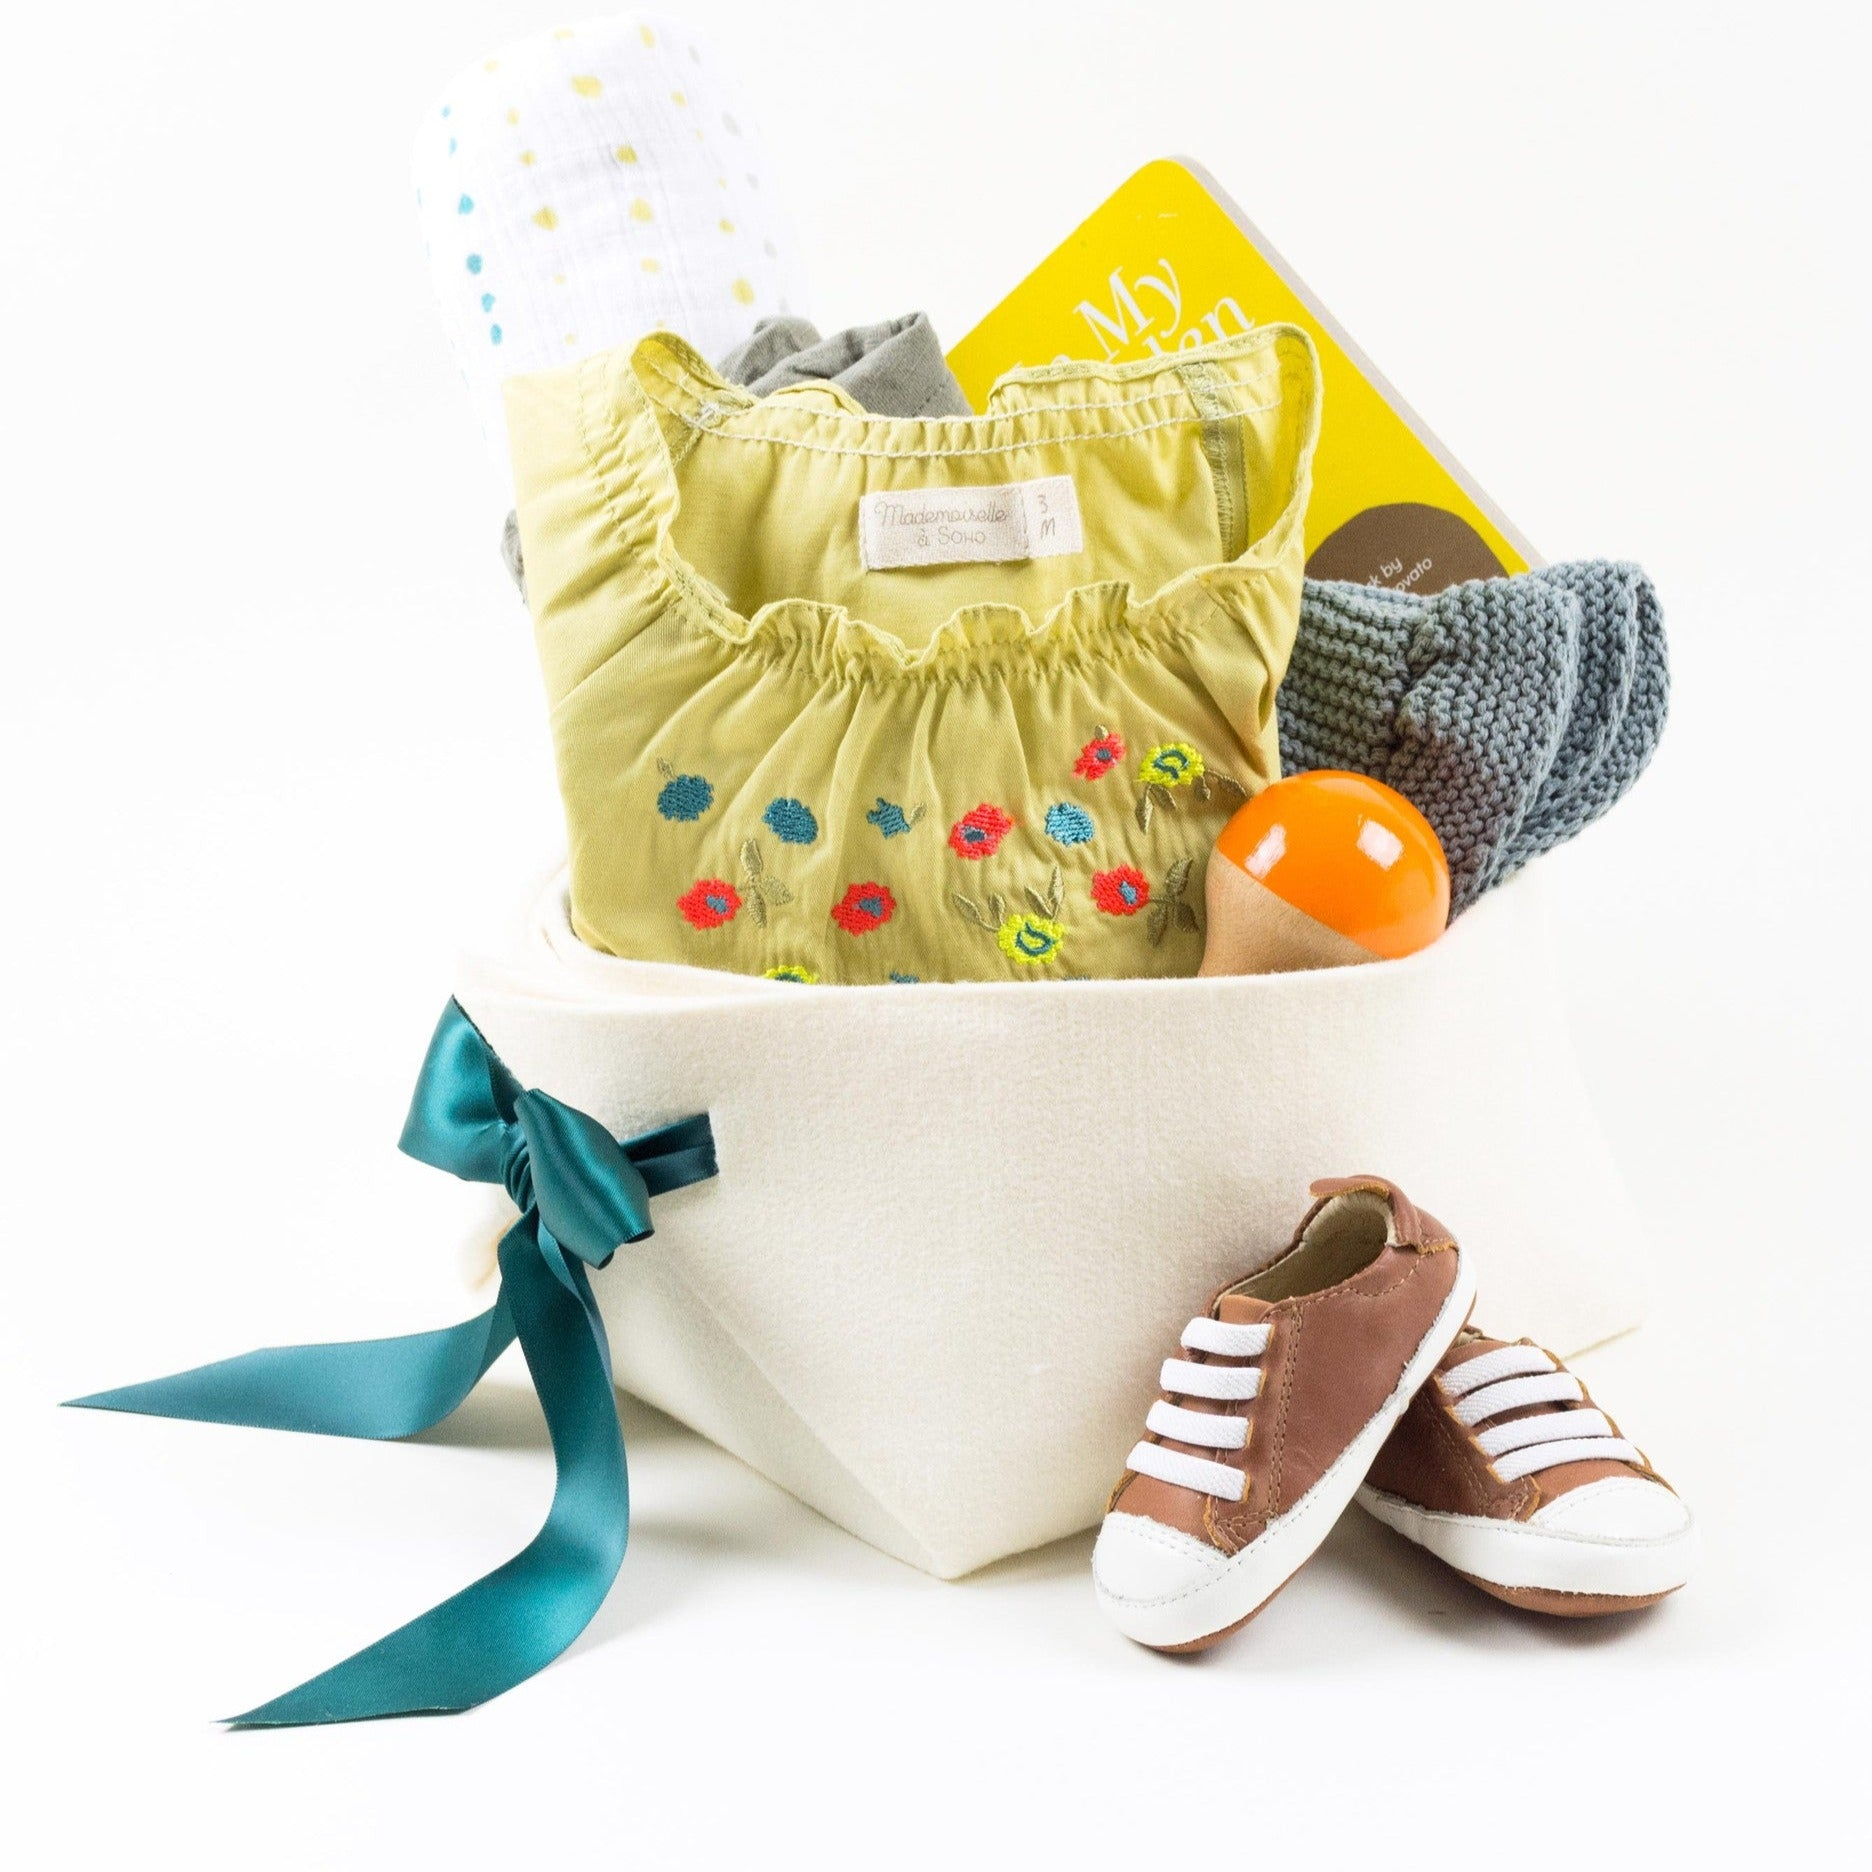 Luxury Baby Girl Gift Basket by Bonjour Baby Baskets